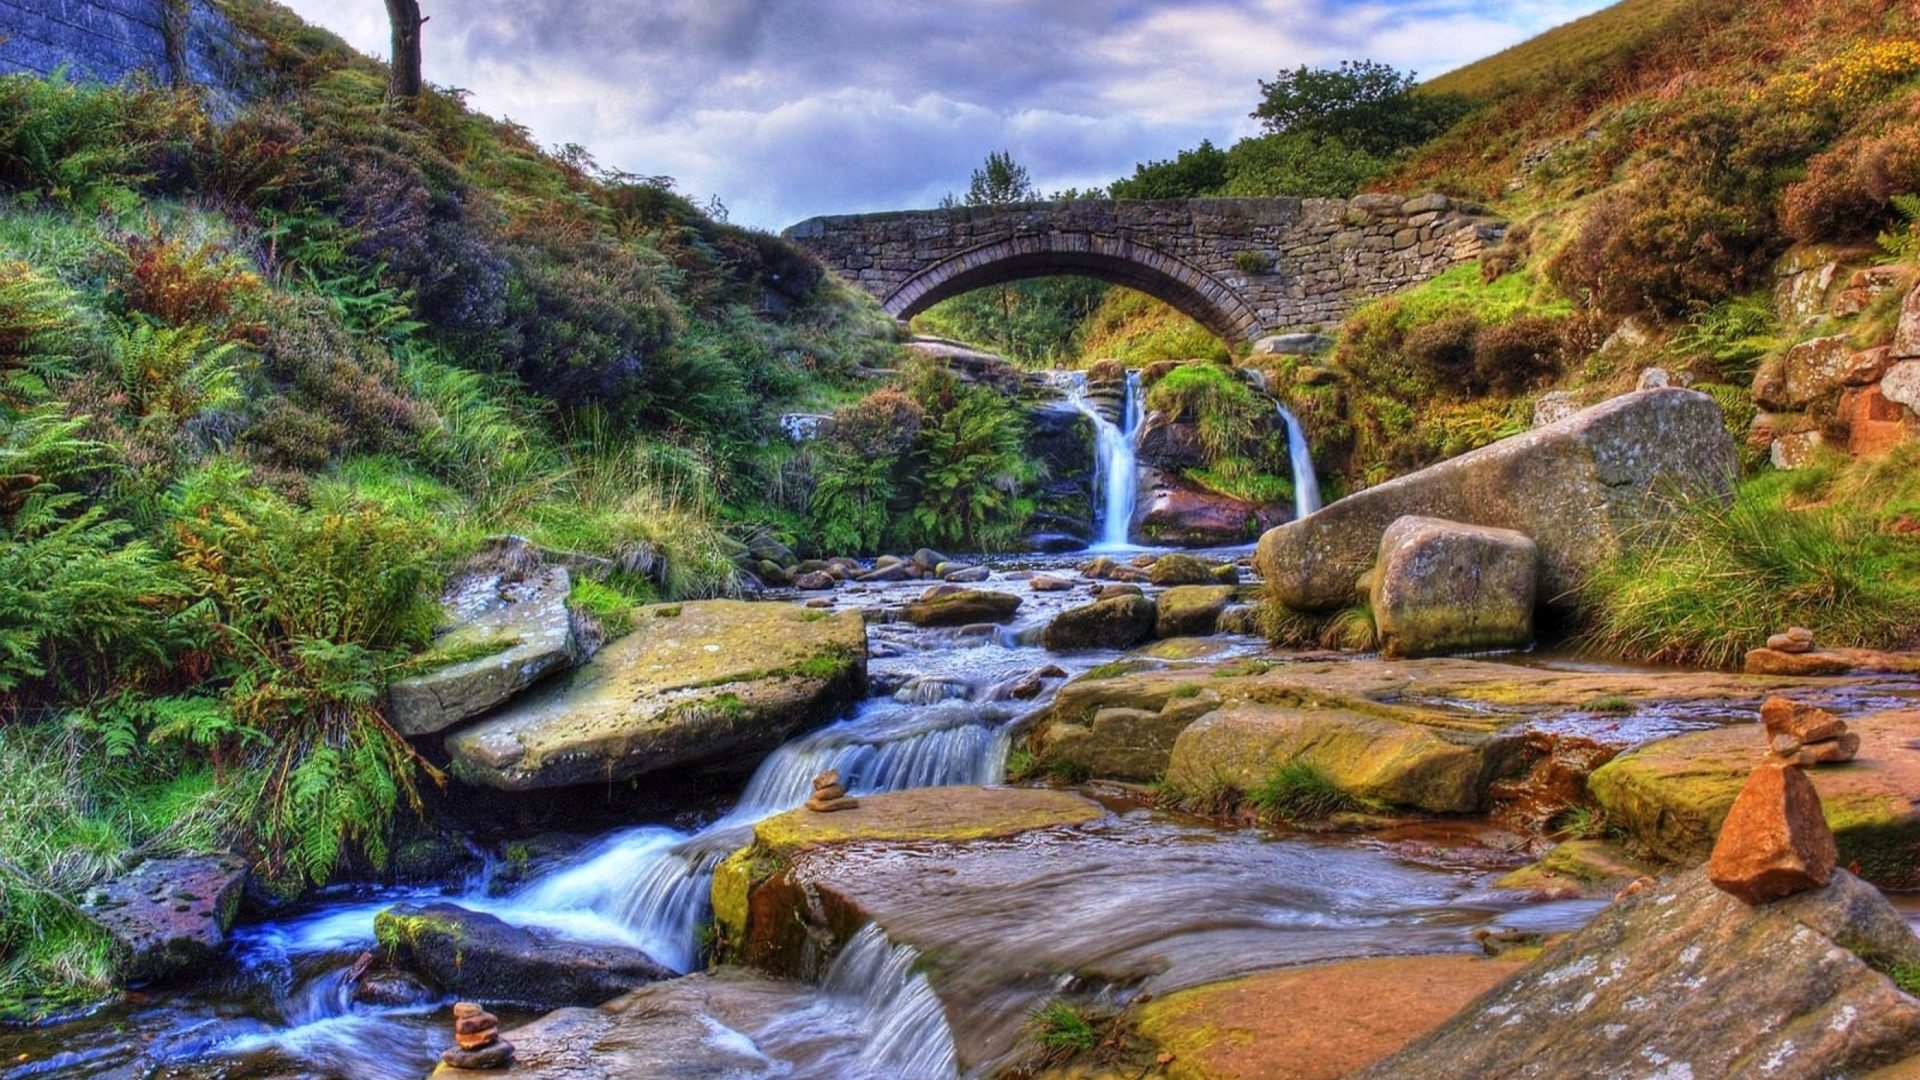 Can You Get Moving Wallpapers For Iphone X Mountain Stream Stone Bridge Gully With Rock Widescreen